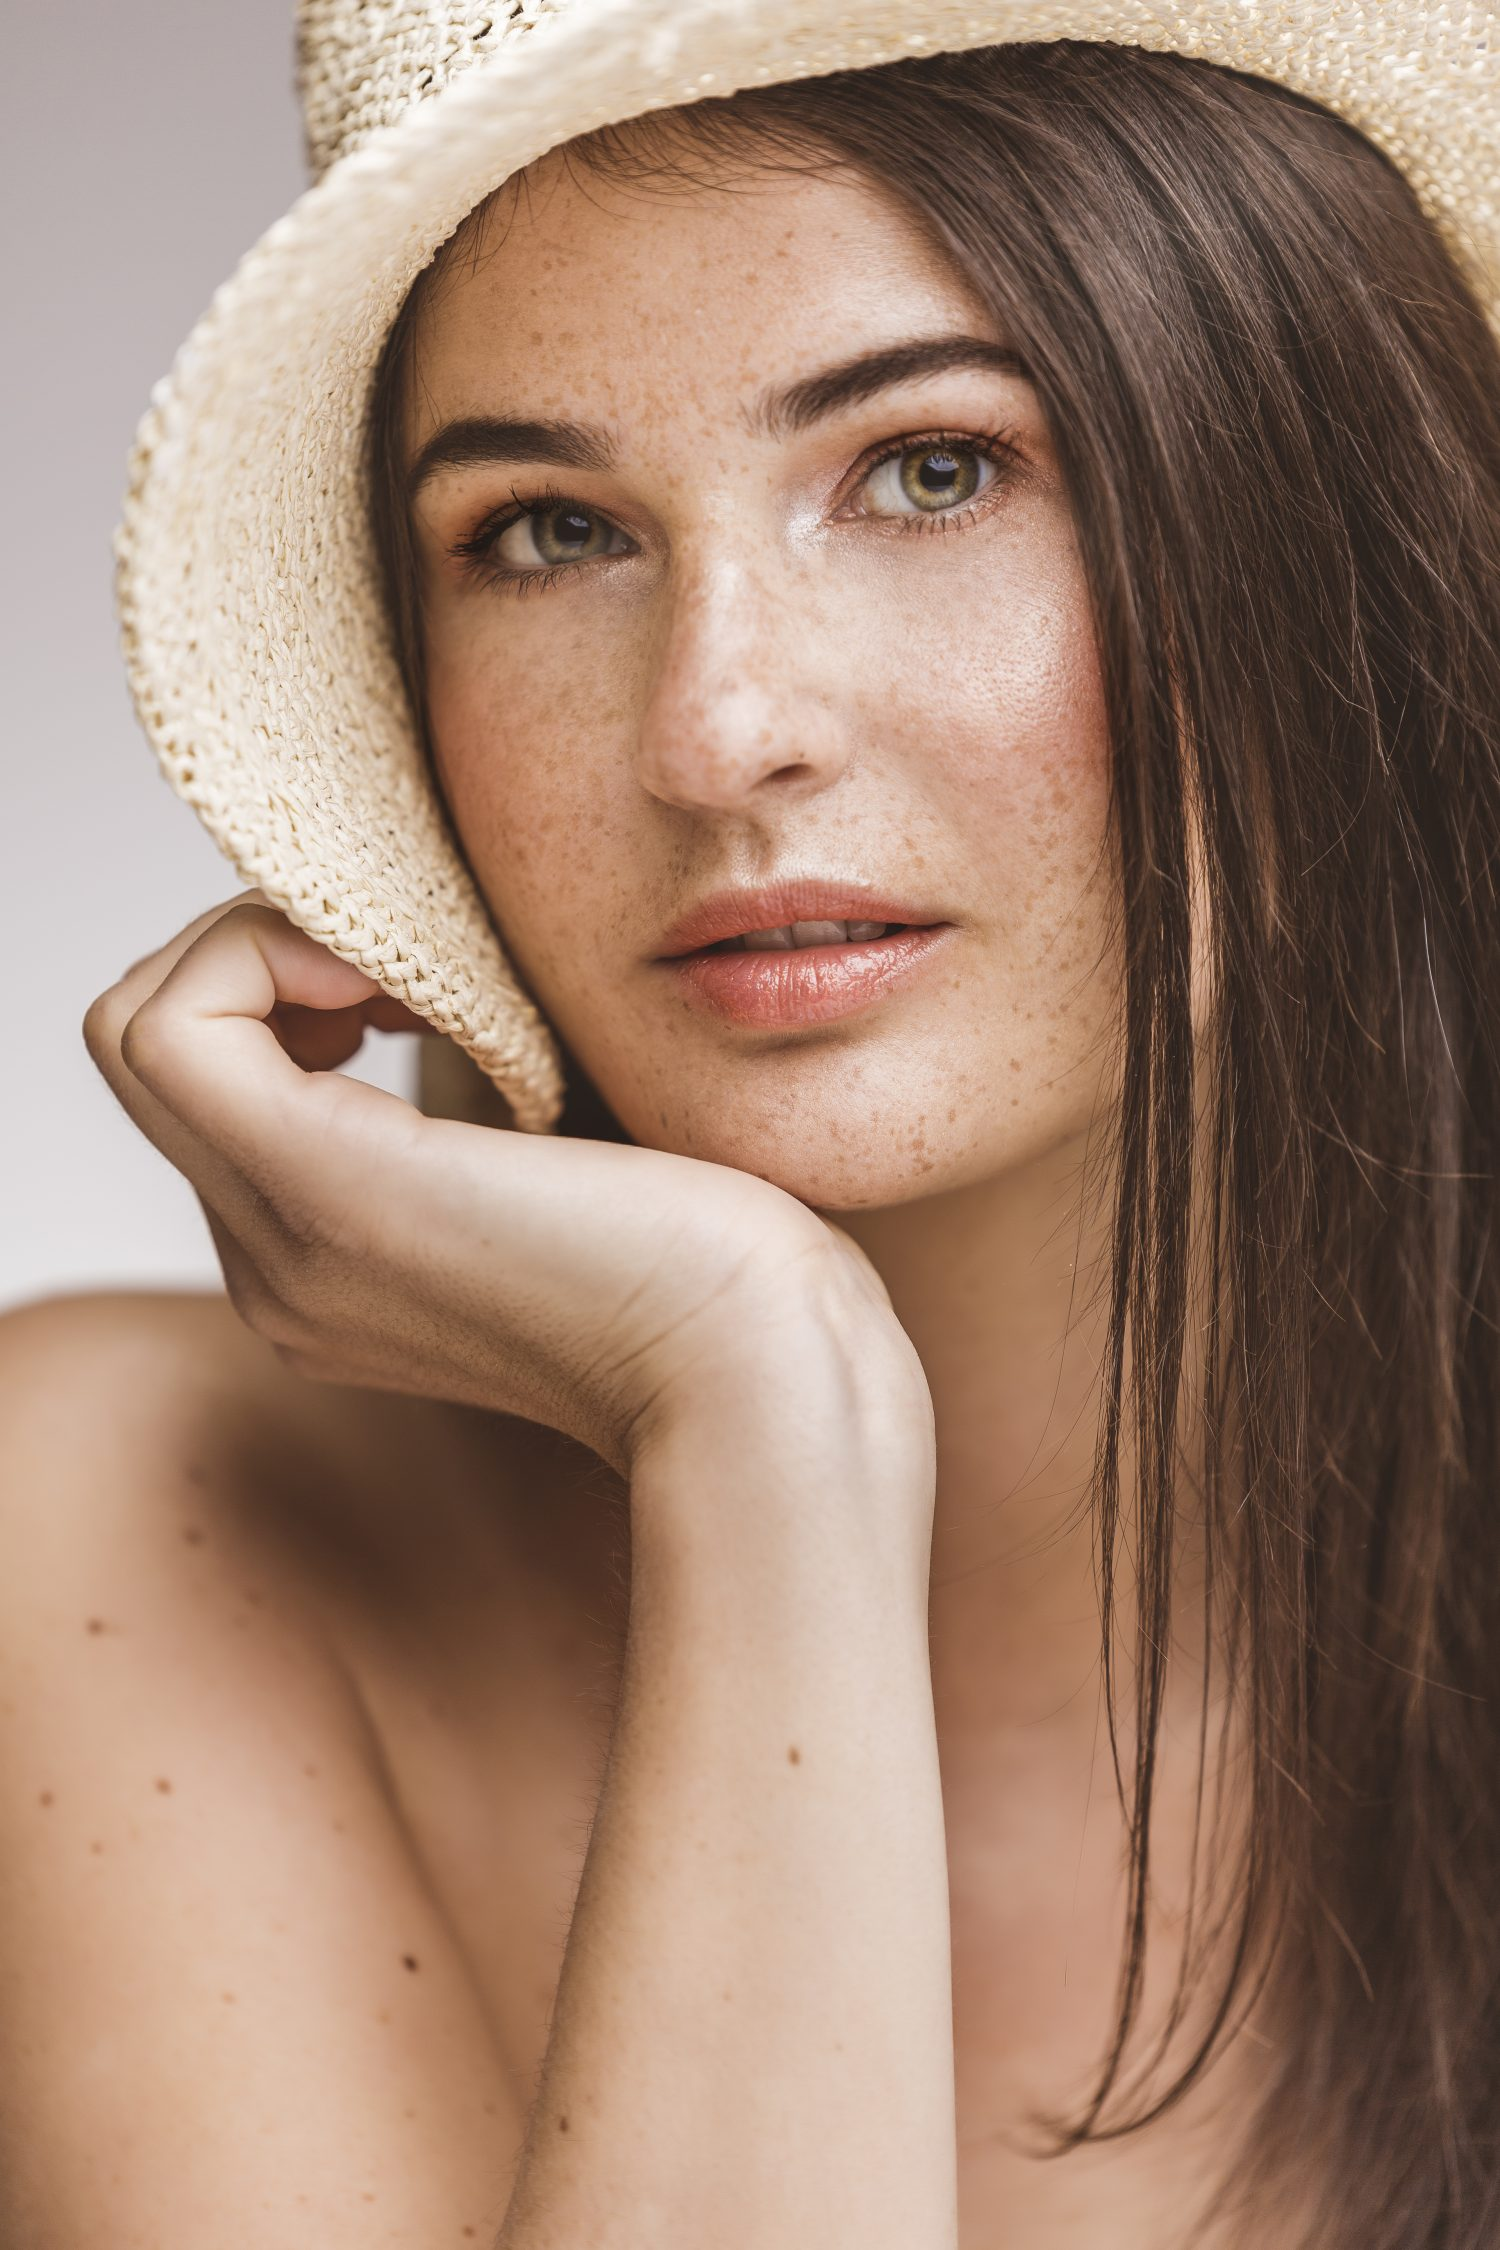 beauty fotoshooting, skin care, freckles, Sommersprossen, glow, beauty makeup, commercial